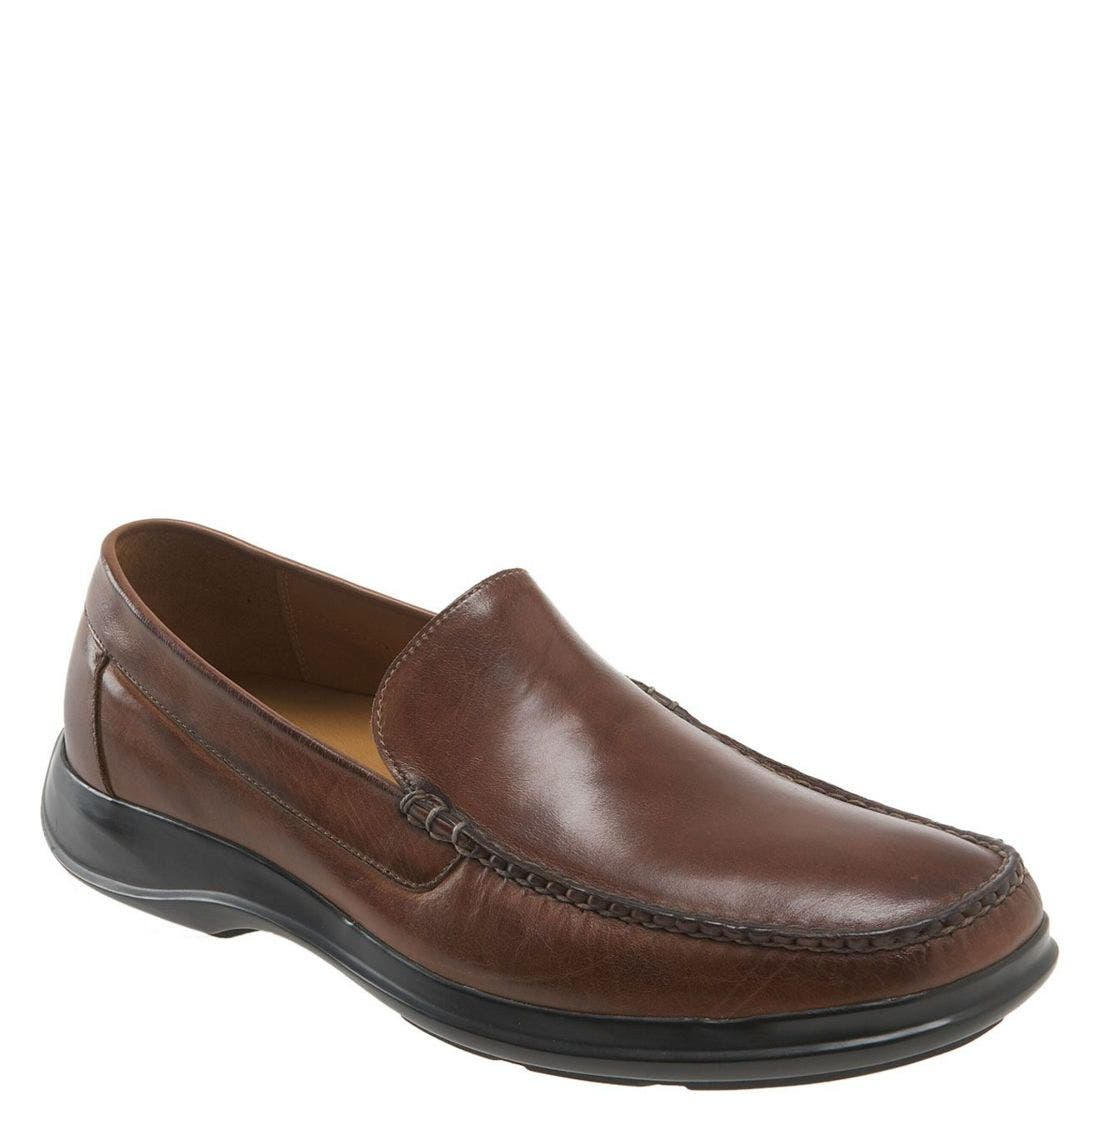 Alternate Image 1 Selected - Cole Haan 'Air Dempsey Venetian' Slip-On